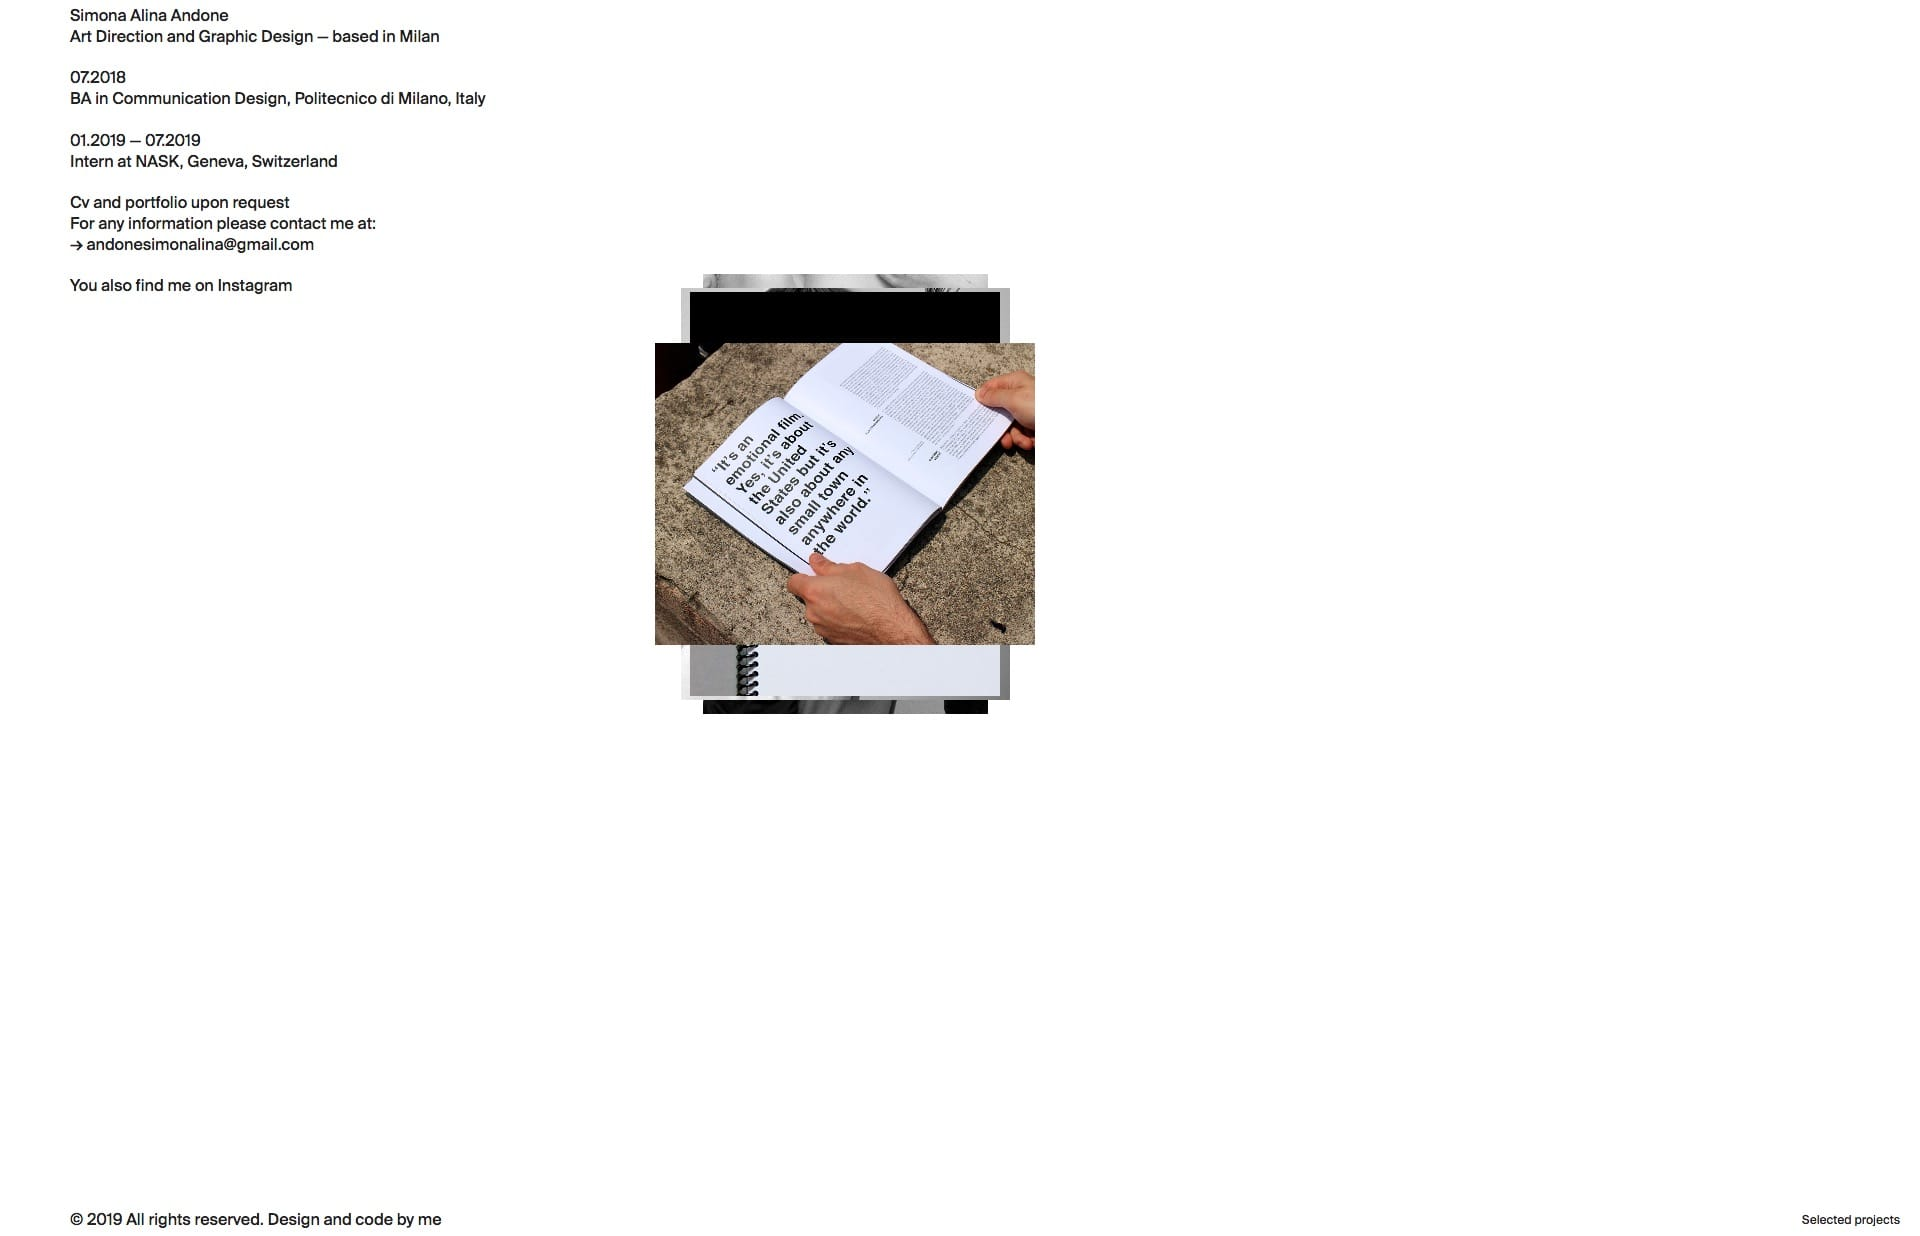 Screenshot of the website Simona Alina Andone, featured on The Gallery, a curated collection of minimal websites